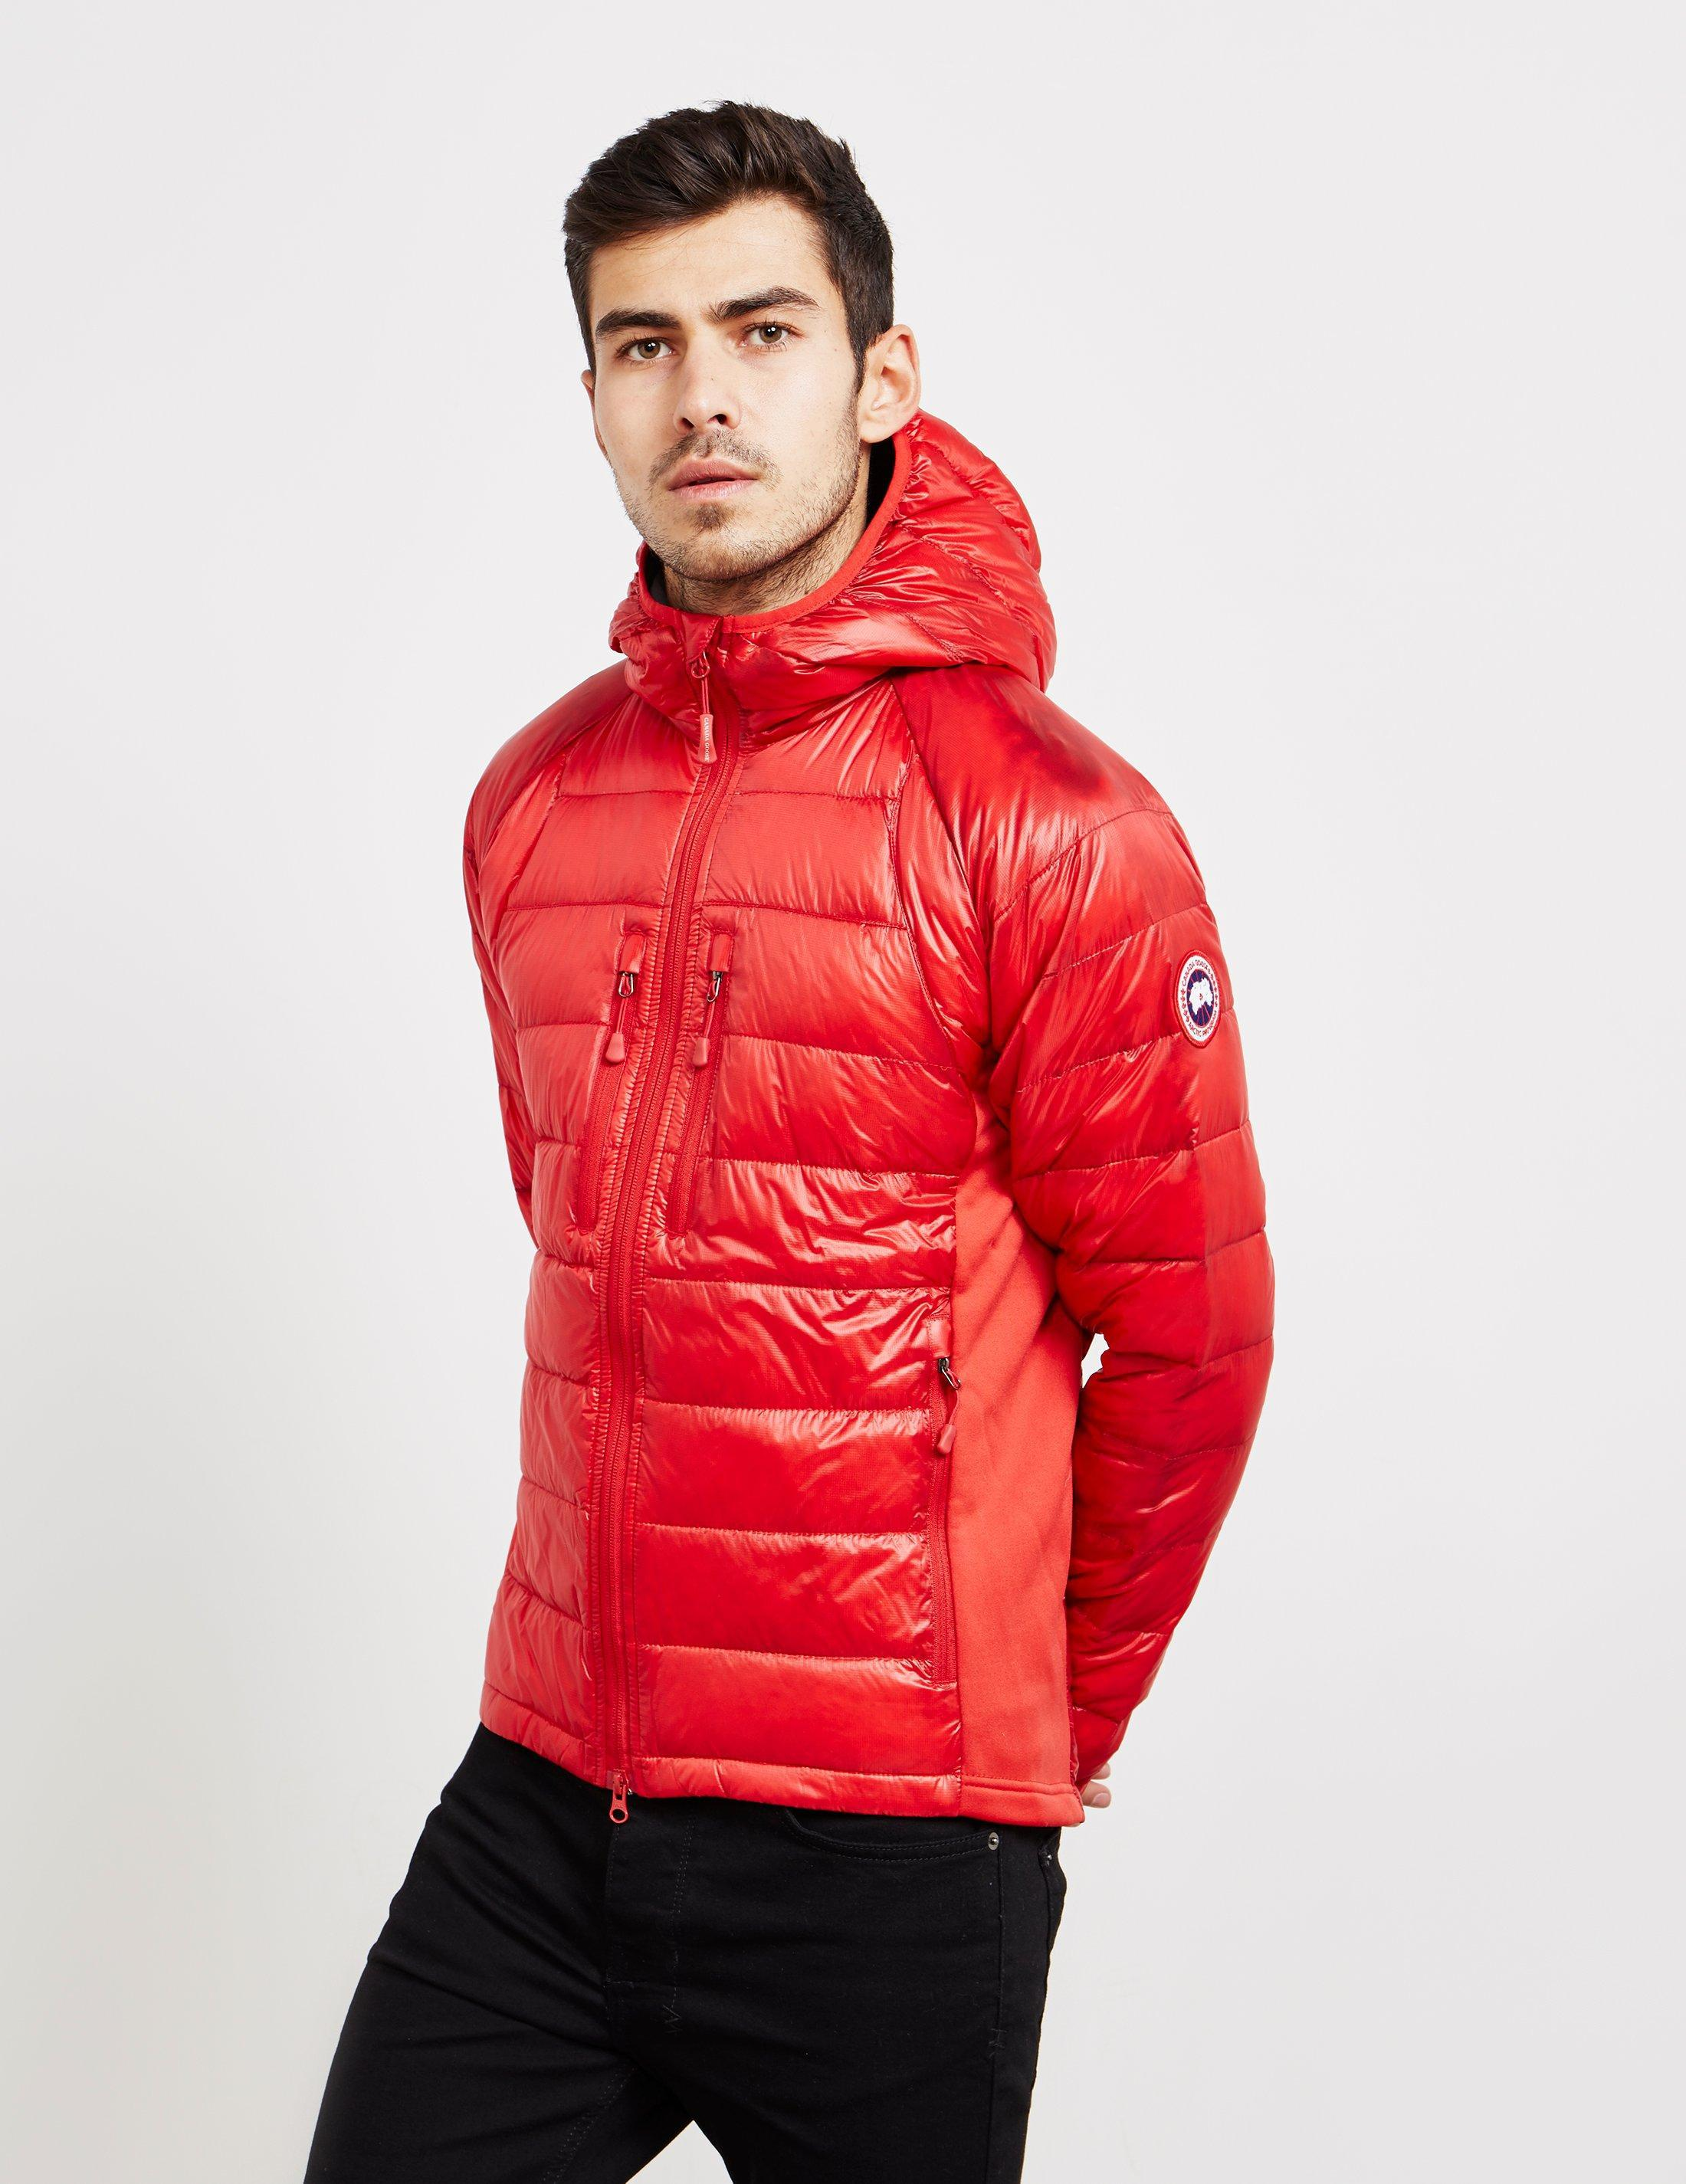 e0b988b94 Canada Goose Goose Mens Hybridge Lightweight Jacket Red for Men - Lyst